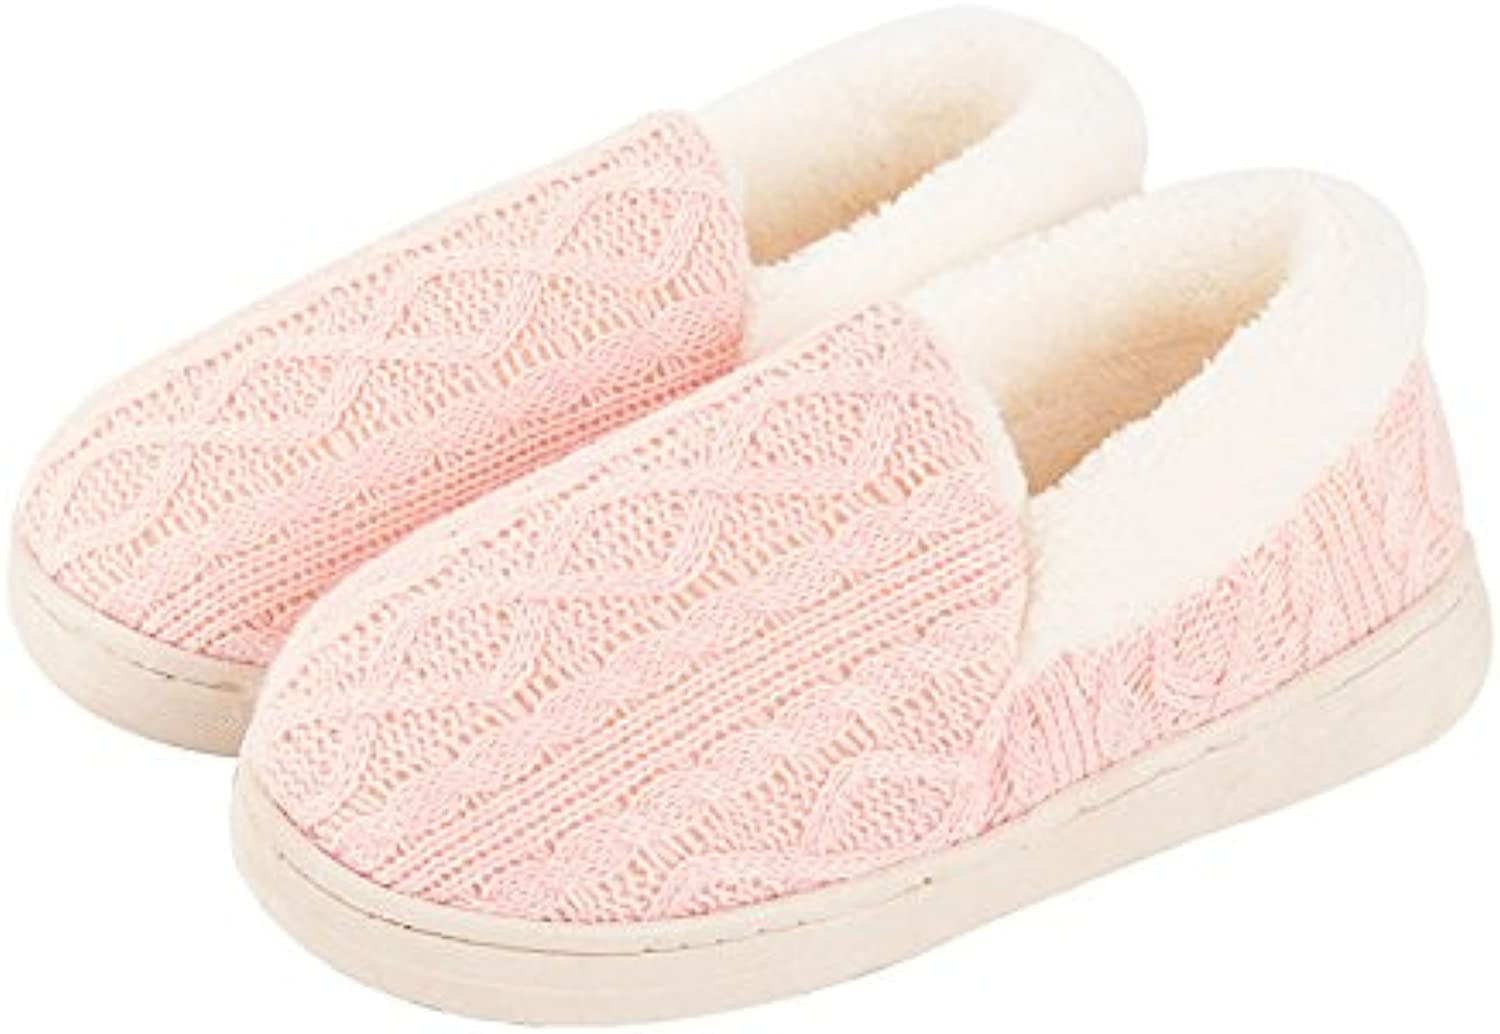 IANXI Home Bag with Winter Indoor Thick Cotton Slippers, Women's Autumn and Winter Warm Fur Slippers (color   Pink, Size   2)